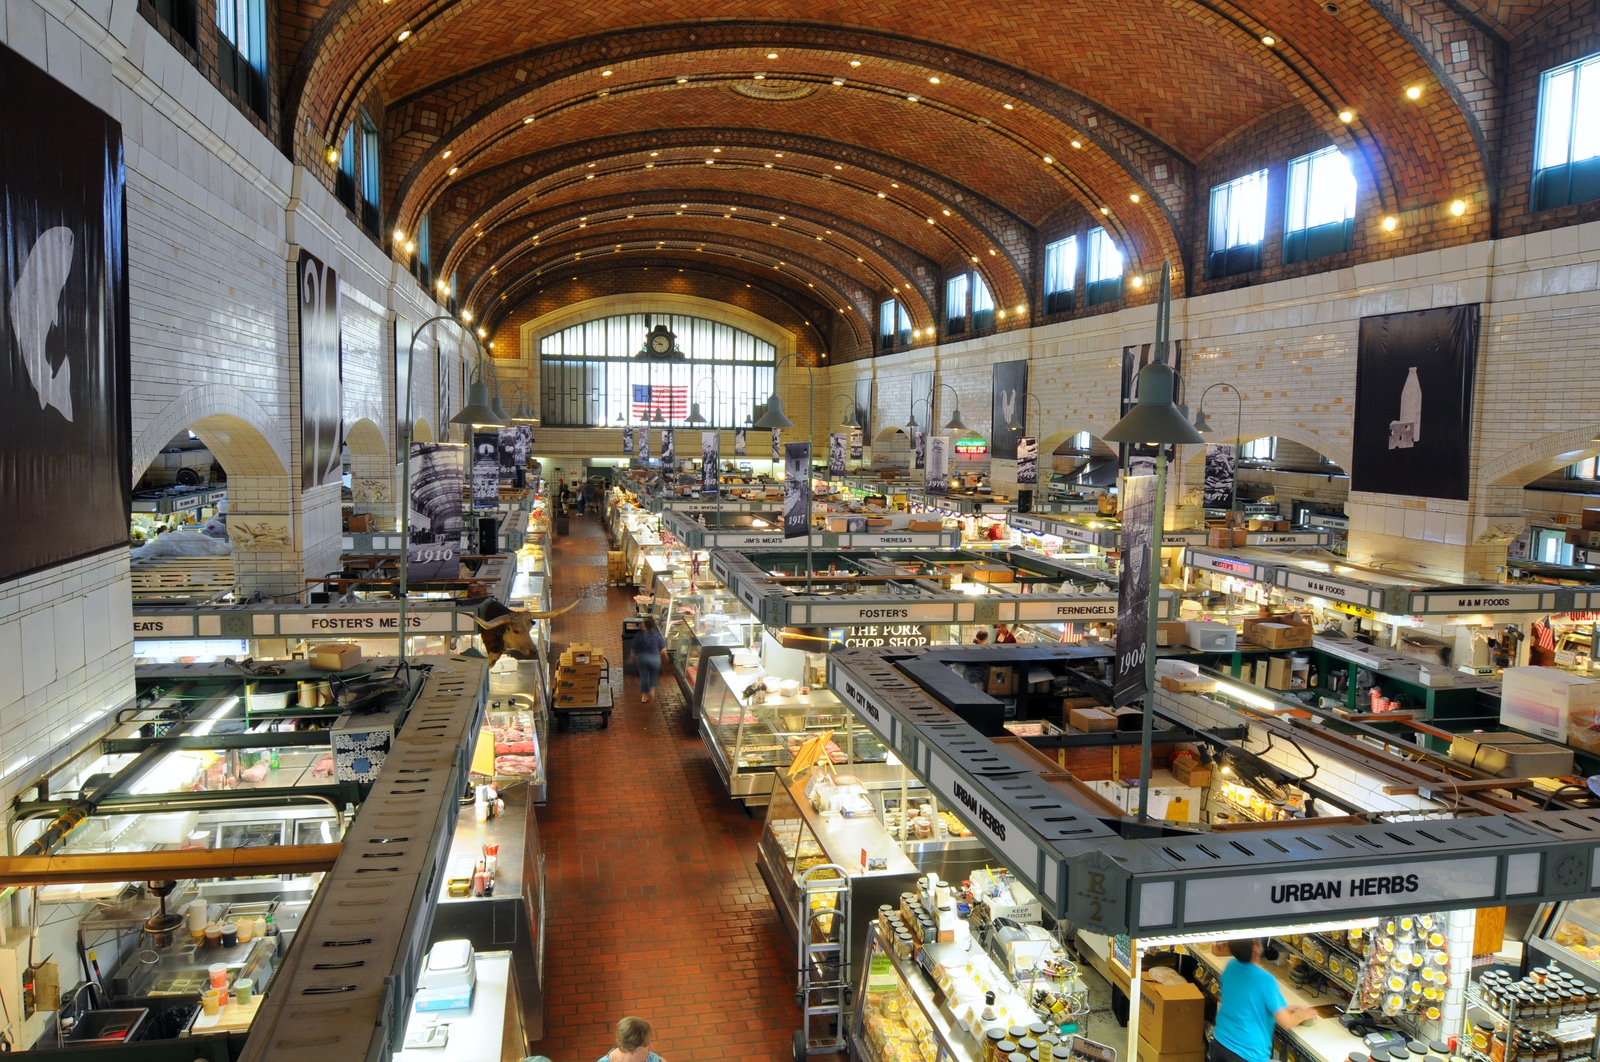 5 Things to Explore at Cleveland's West Side Market